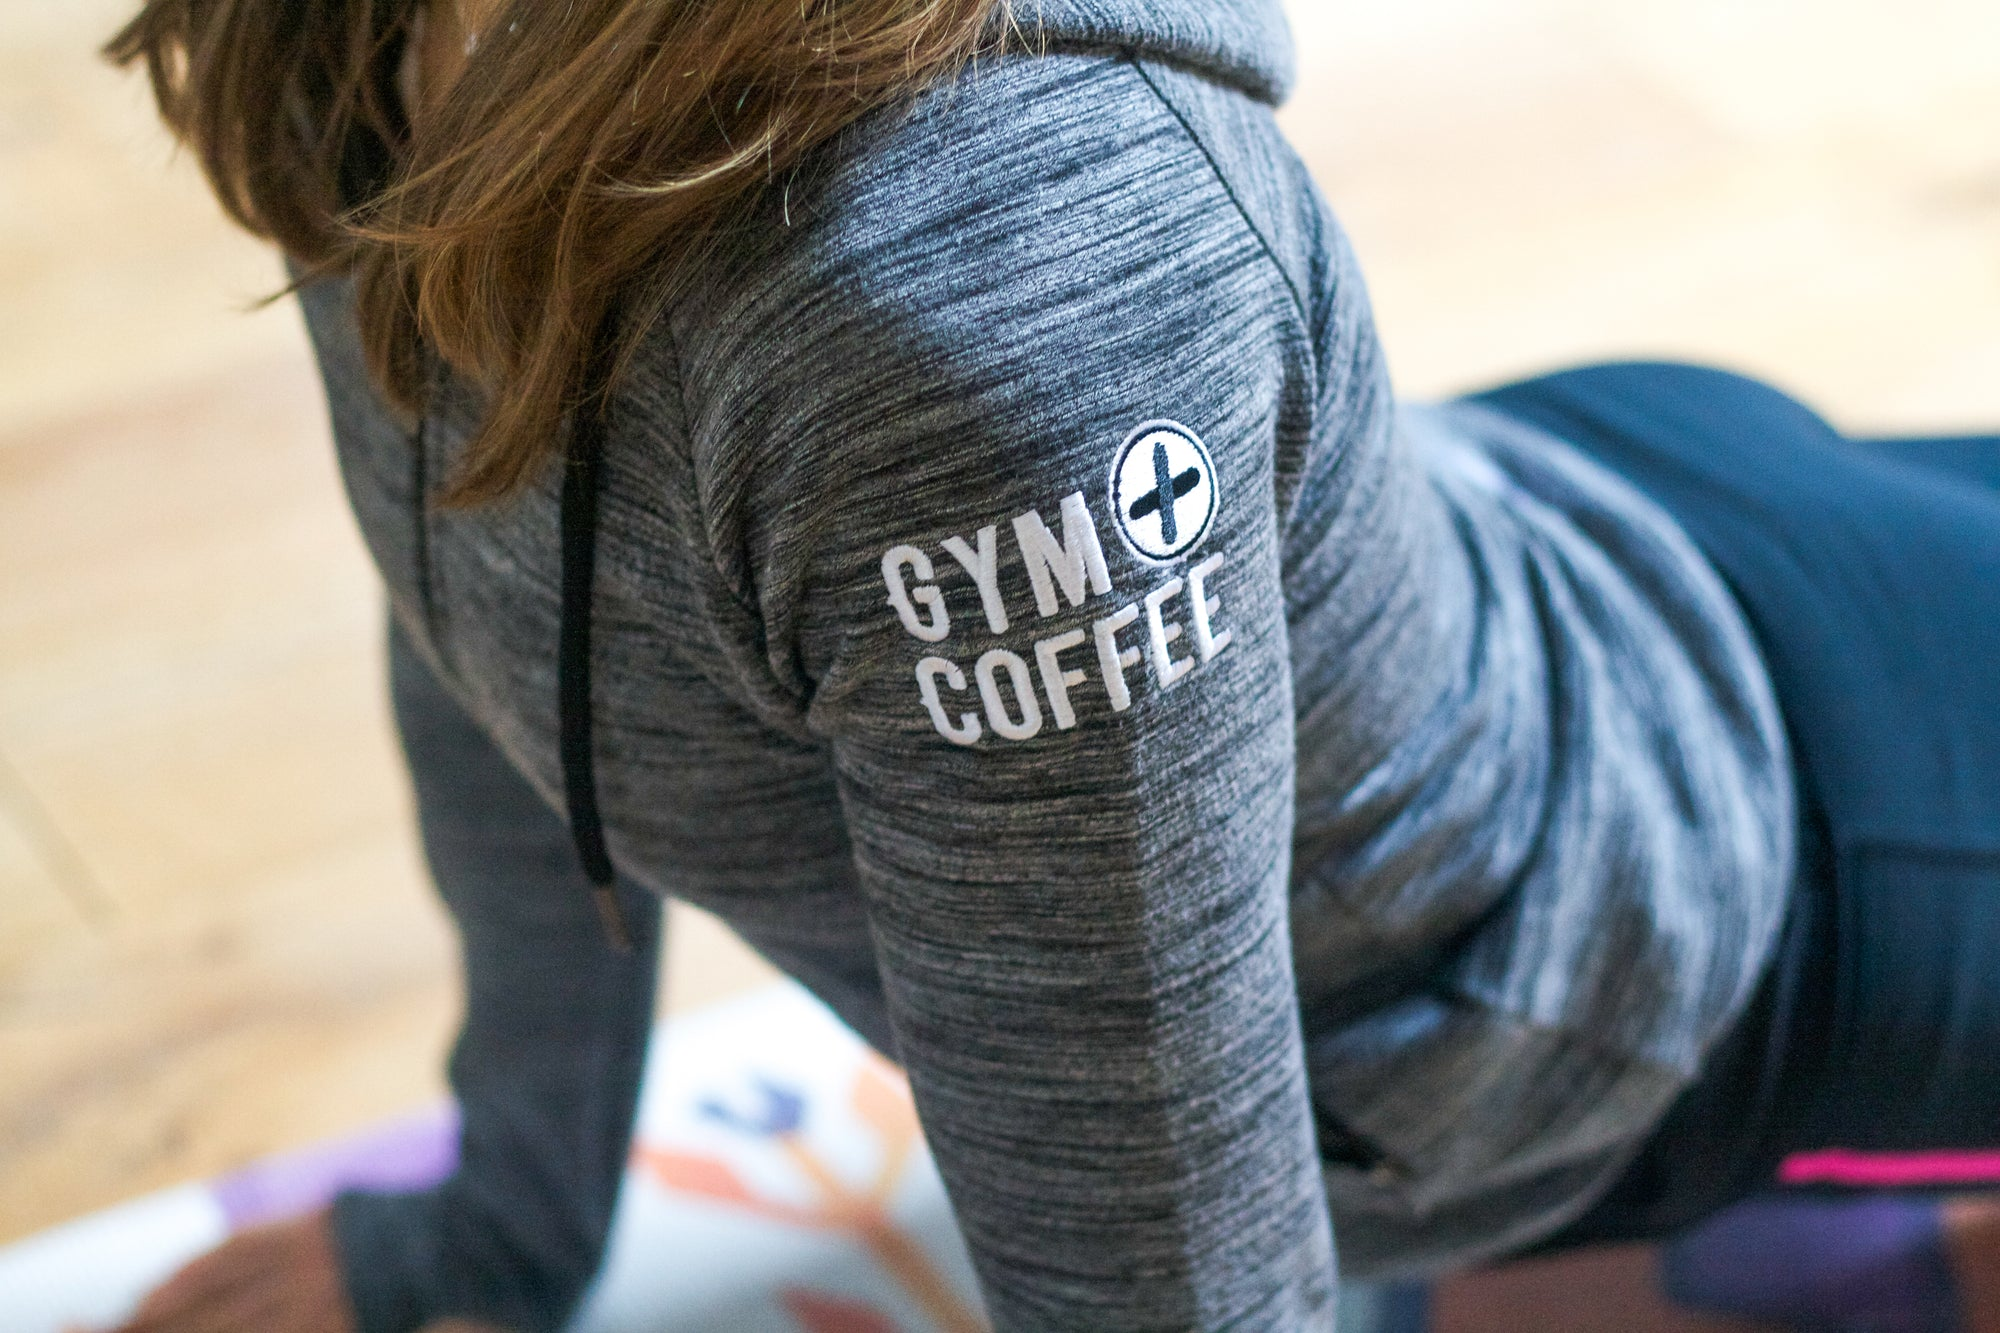 Chapter 6: Figuring out the right products for Gym+Coffee